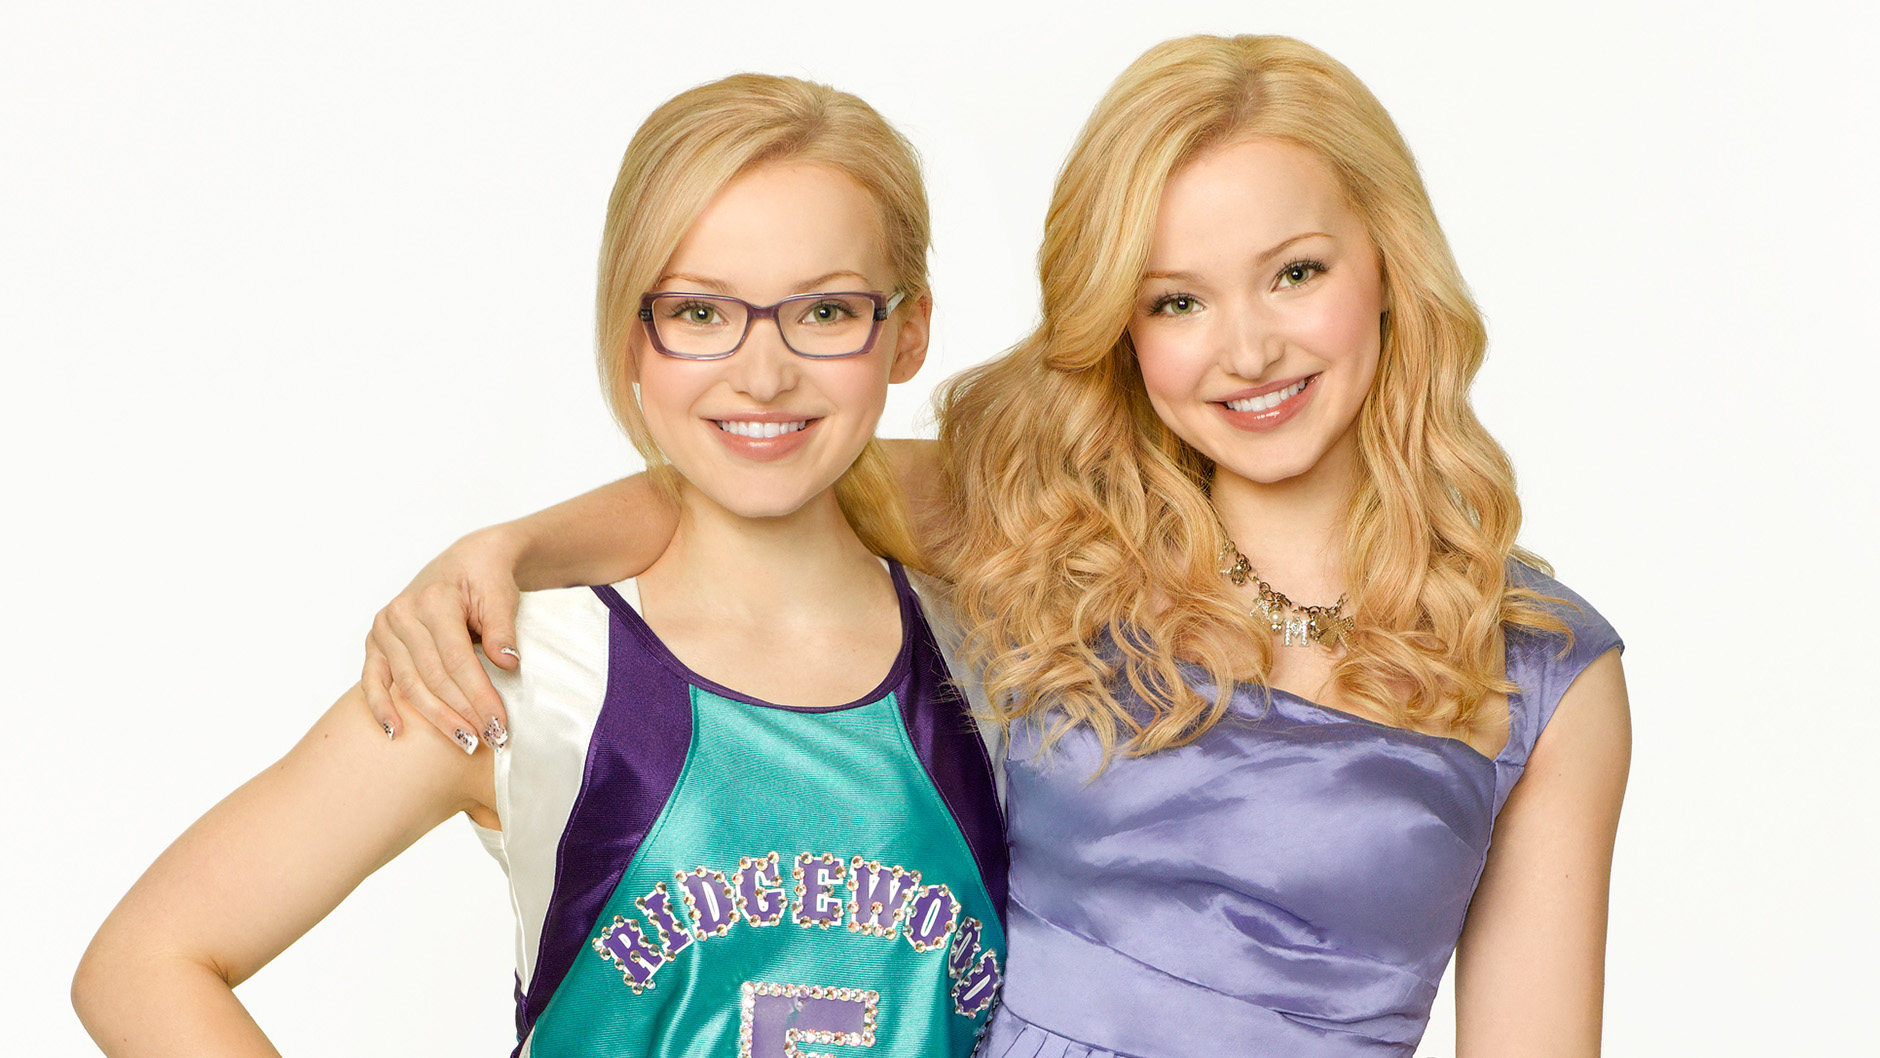 Dove Cameron Dishes on Double Standards | Project: GirlSpire